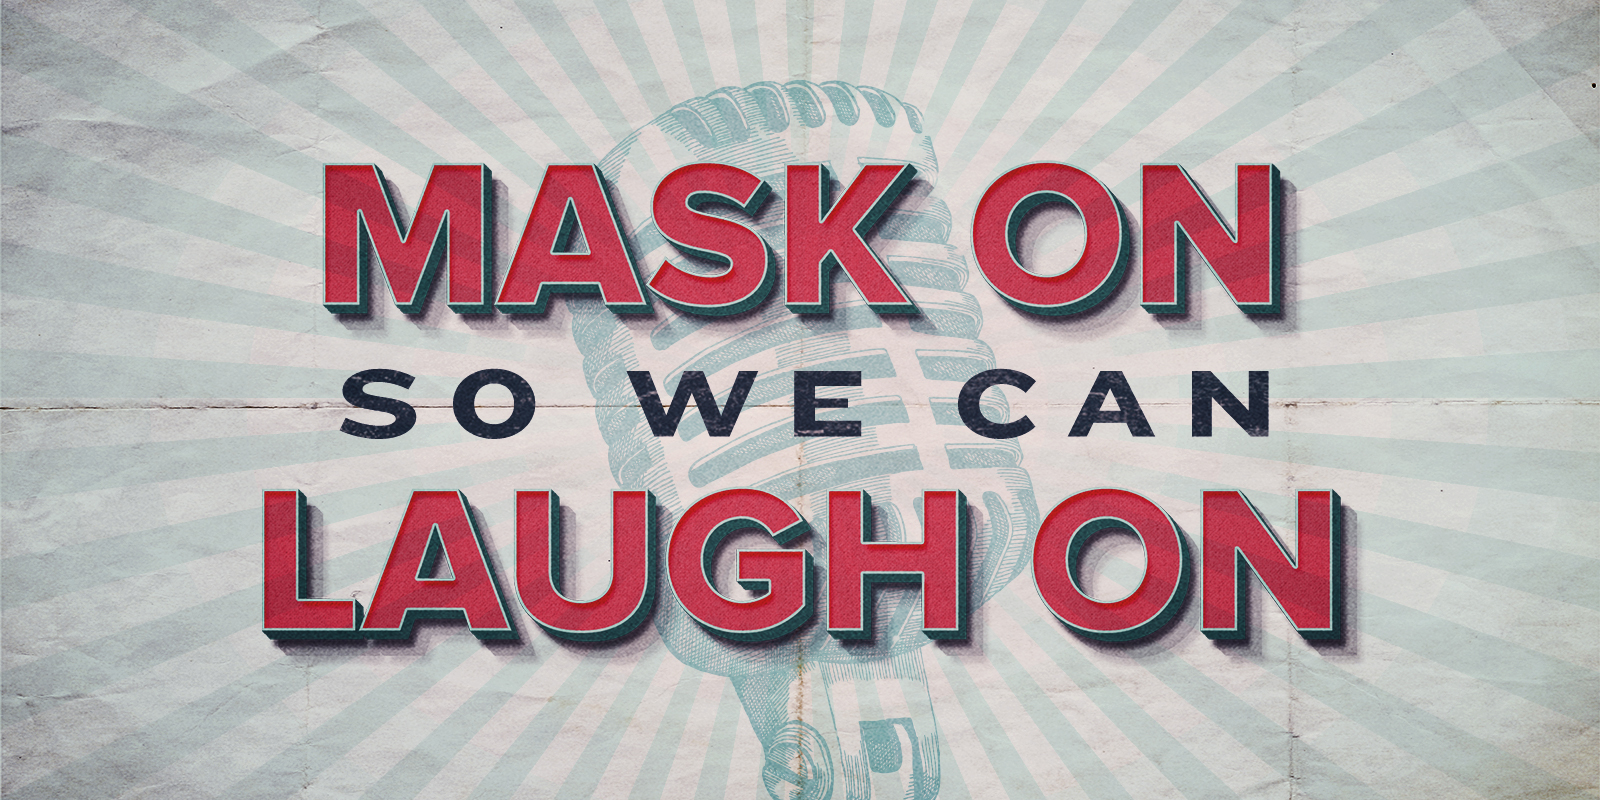 Mask On So We Can Rock On